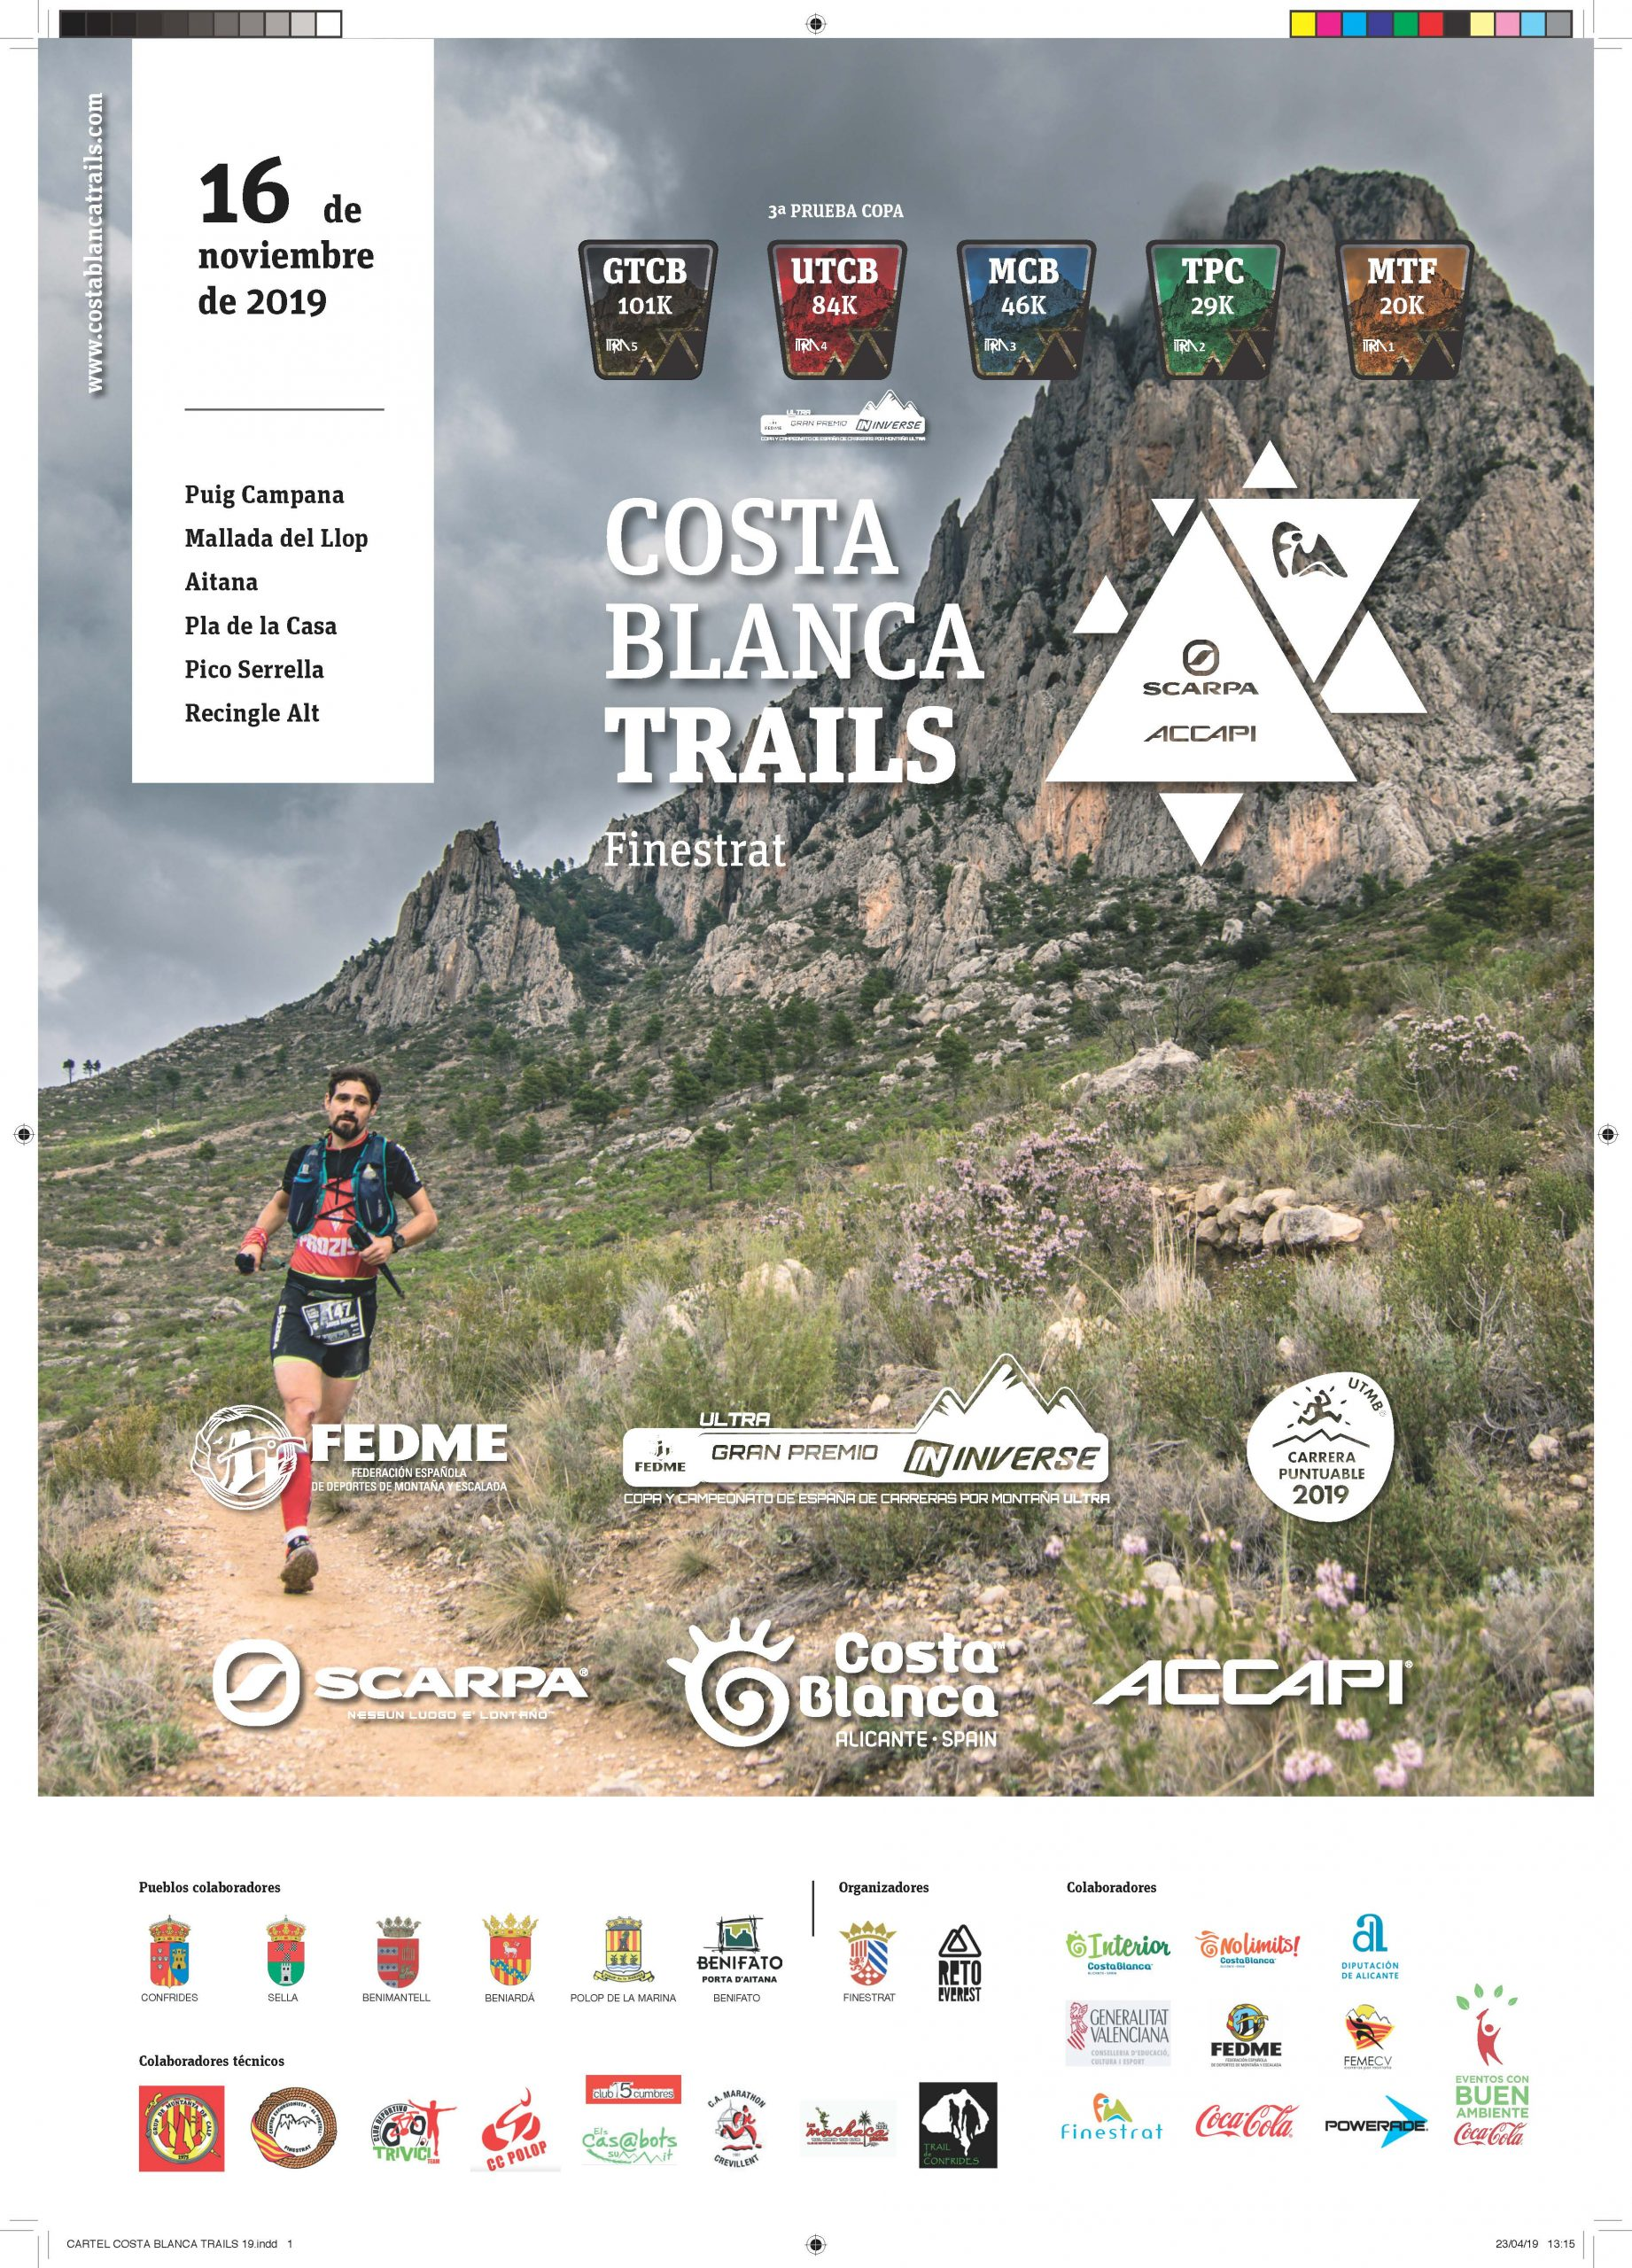 Costa Blanca Trails (Finestrat, Alicante) - 16/11/2019